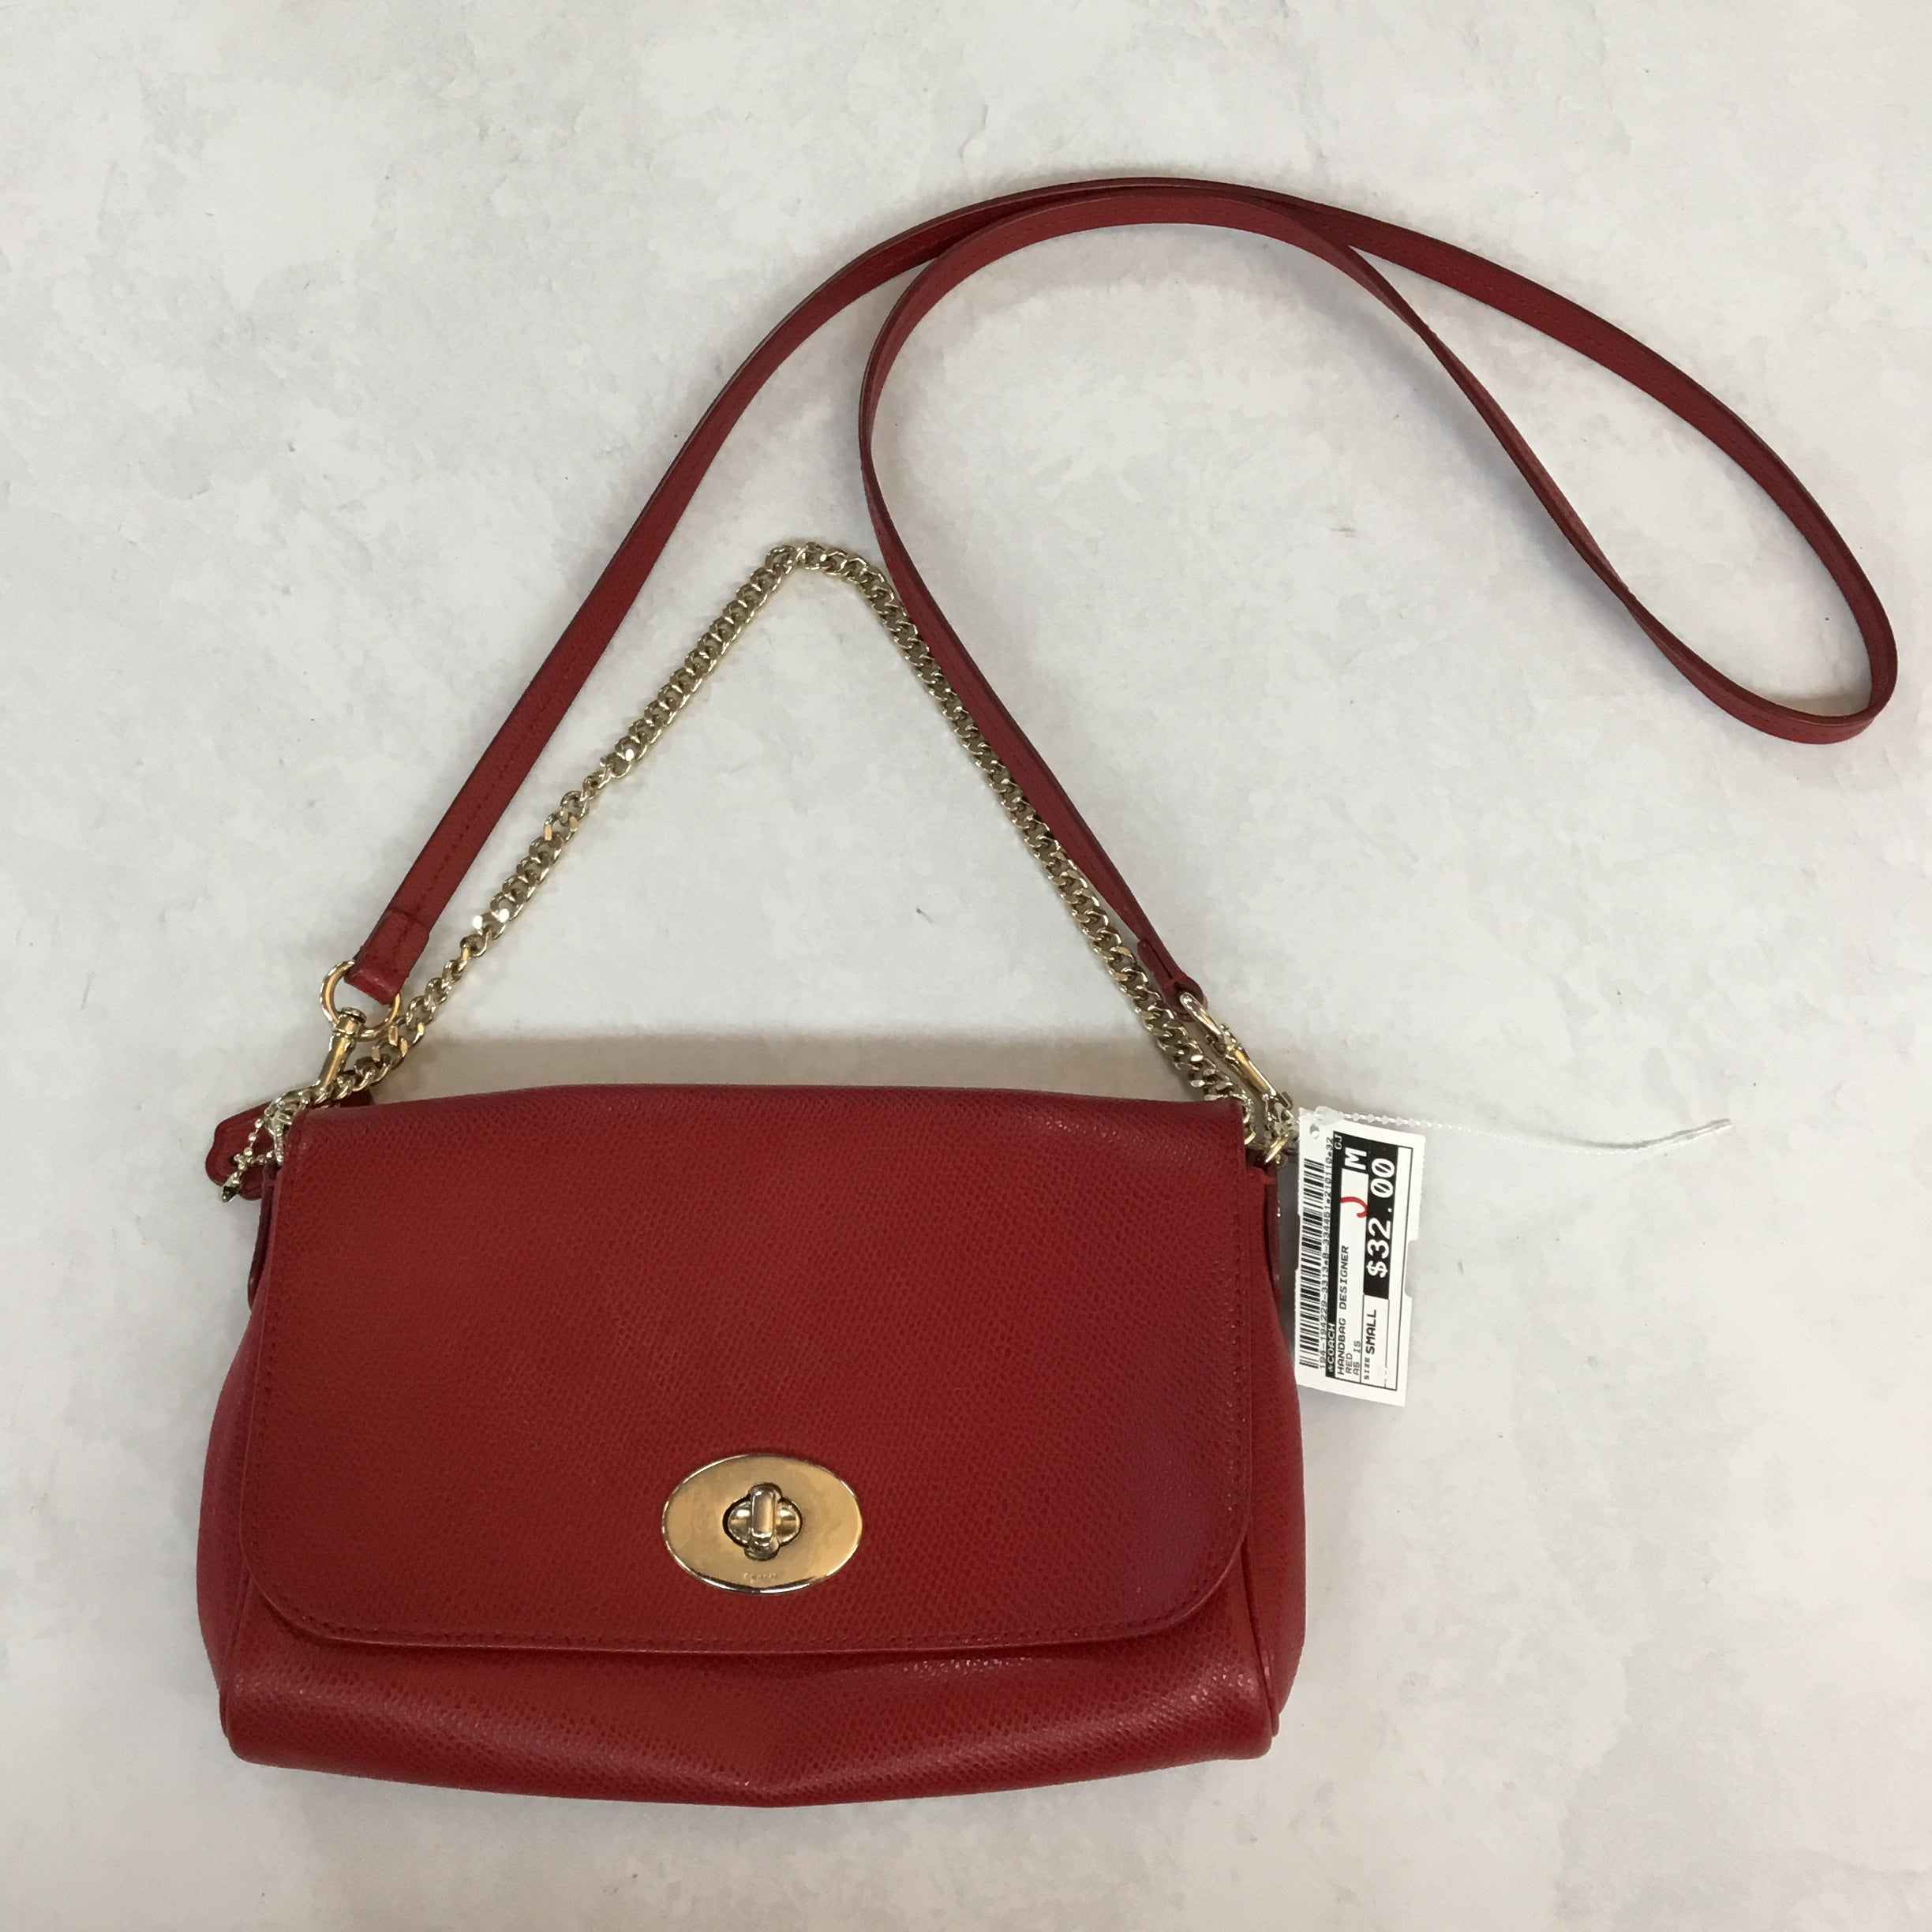 Primary Photo - BRAND: COACH <BR>STYLE: HANDBAG DESIGNER <BR>COLOR: RED <BR>SIZE: SMALL <BR>OTHER INFO: AS IS <BR>SKU: 194-194229-3313<BR>BOTH CLUTCH CHAIN AND CROSSBODY STRAP CAN COME COMPLETELY OFF. <BR>8X5.5X1